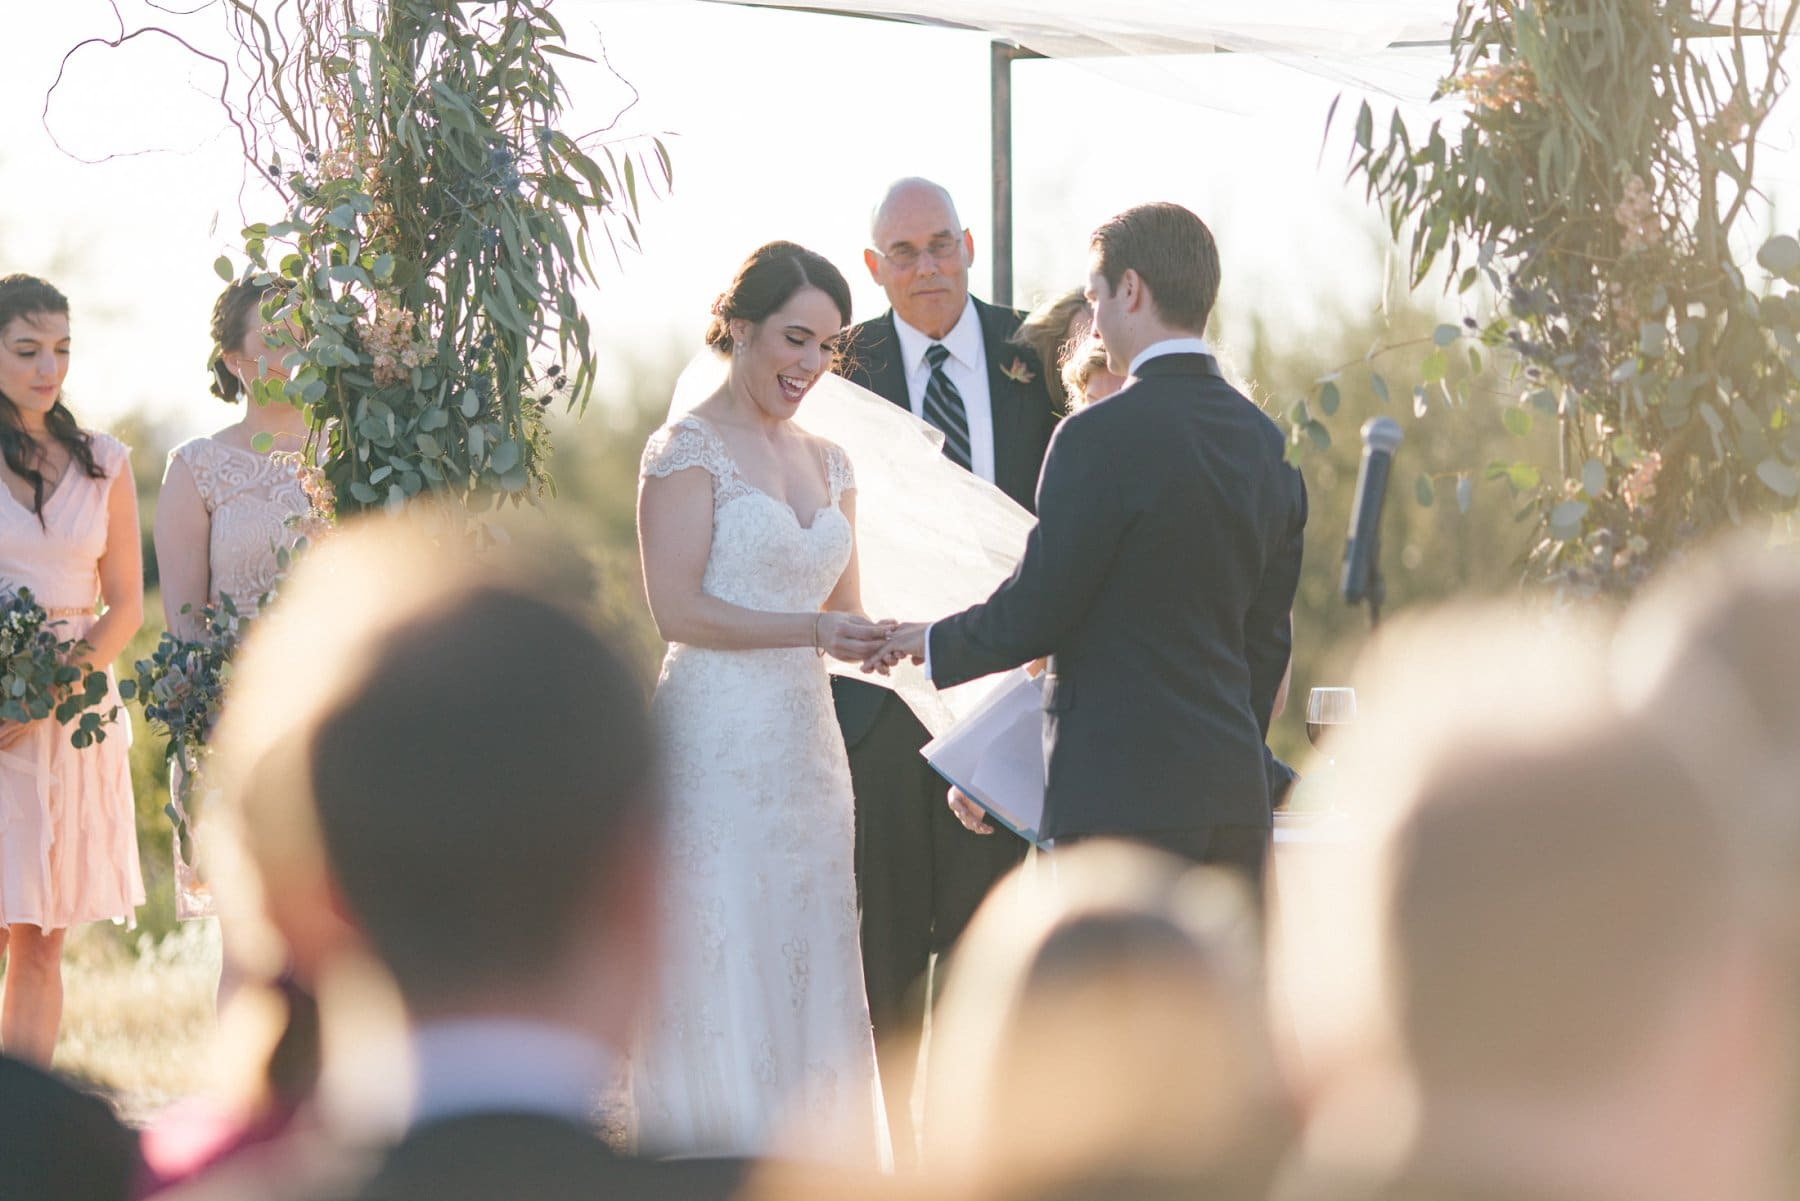 wedding ceremony outdoors at Desert Foothills barn wedding